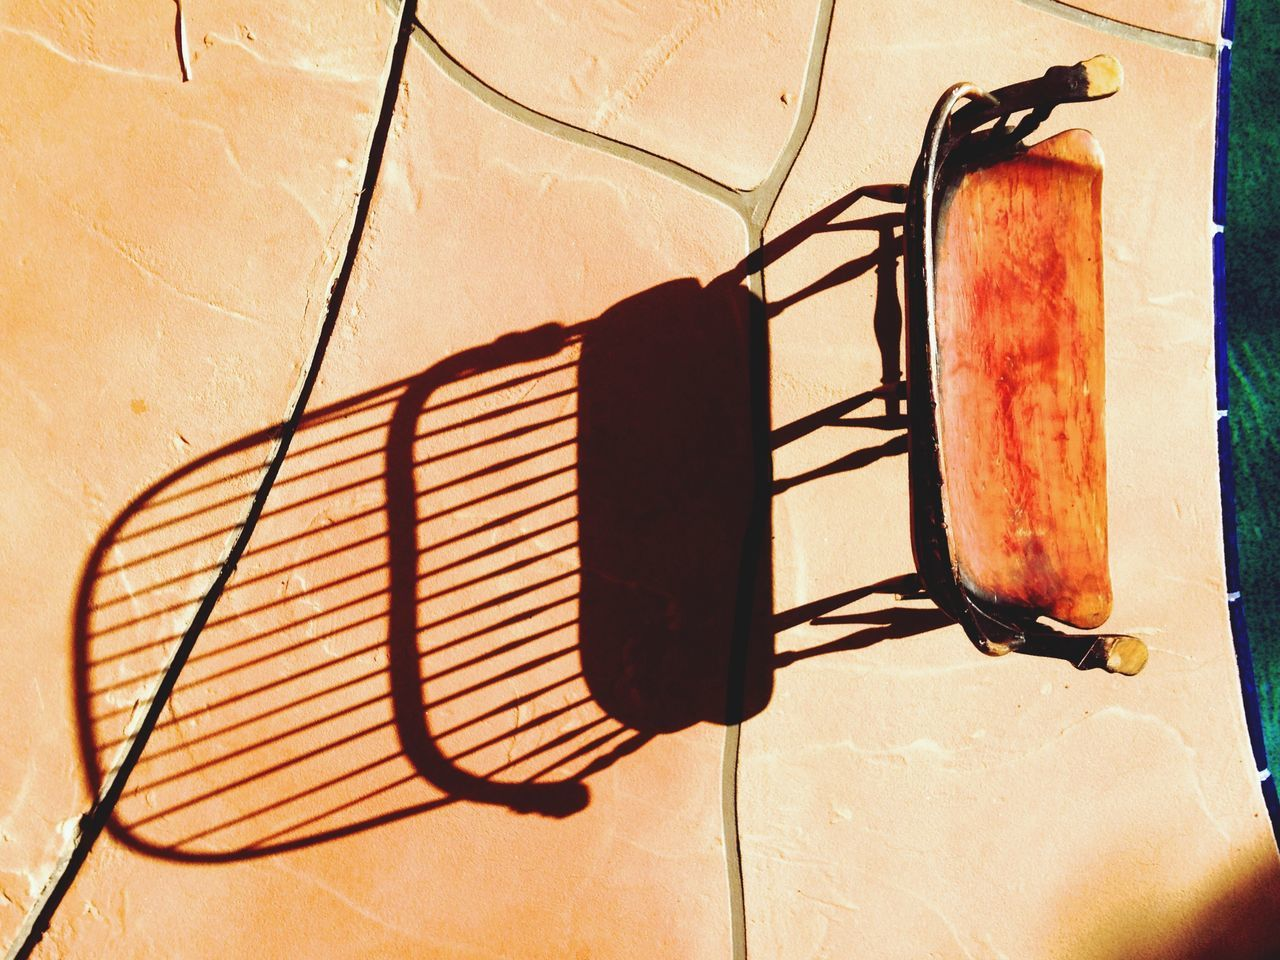 Empty Chair By Poolside